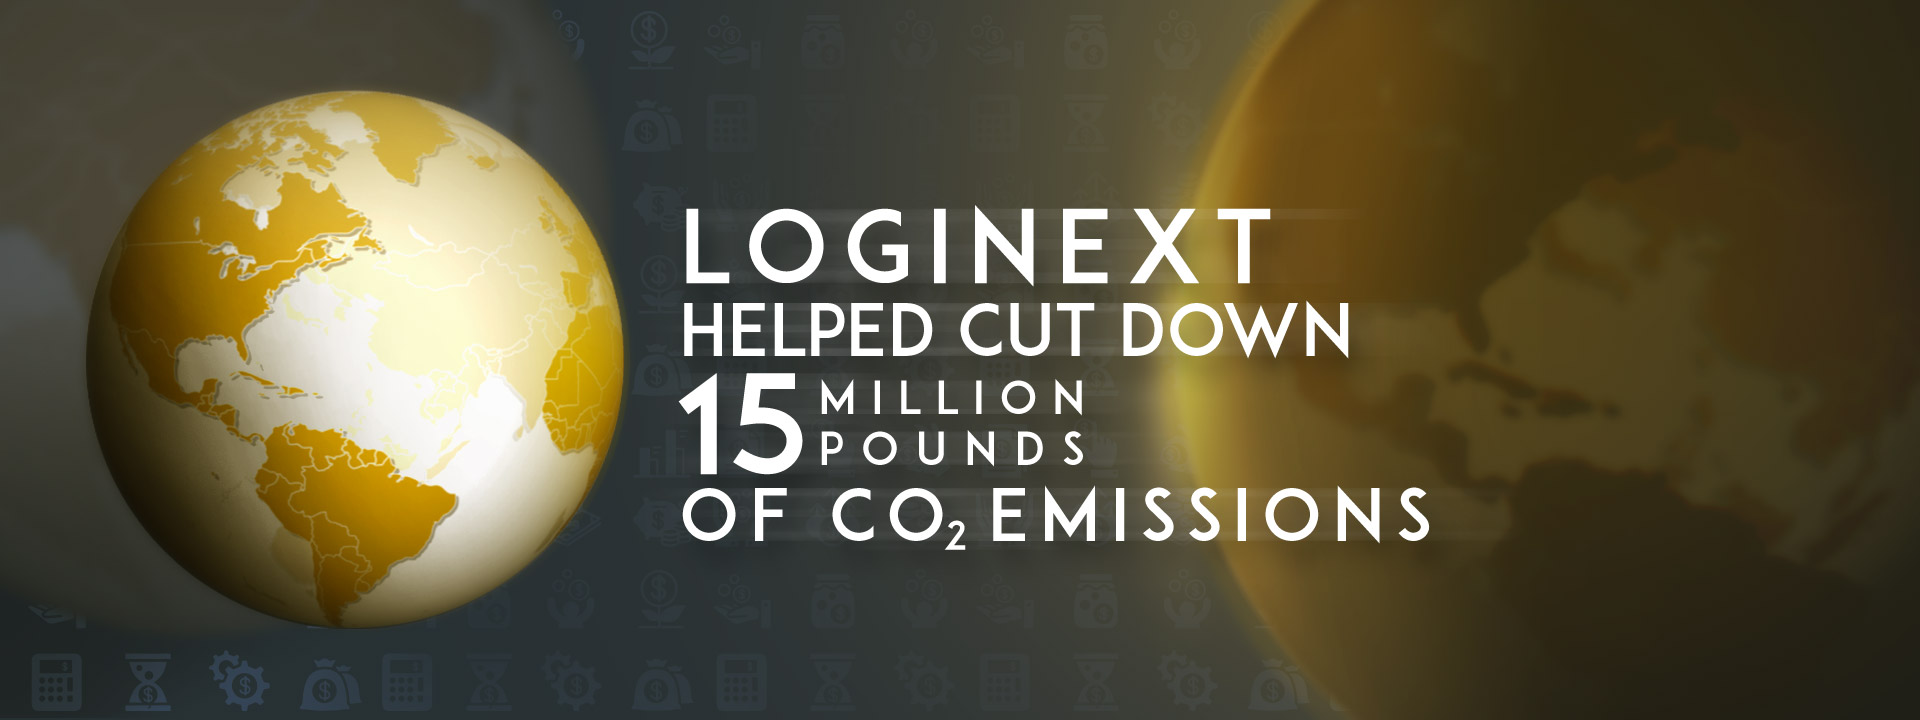 LogiNext Drives Enterprises to Cut Down 15 Million Pounds of CO2 Emissions by 2018